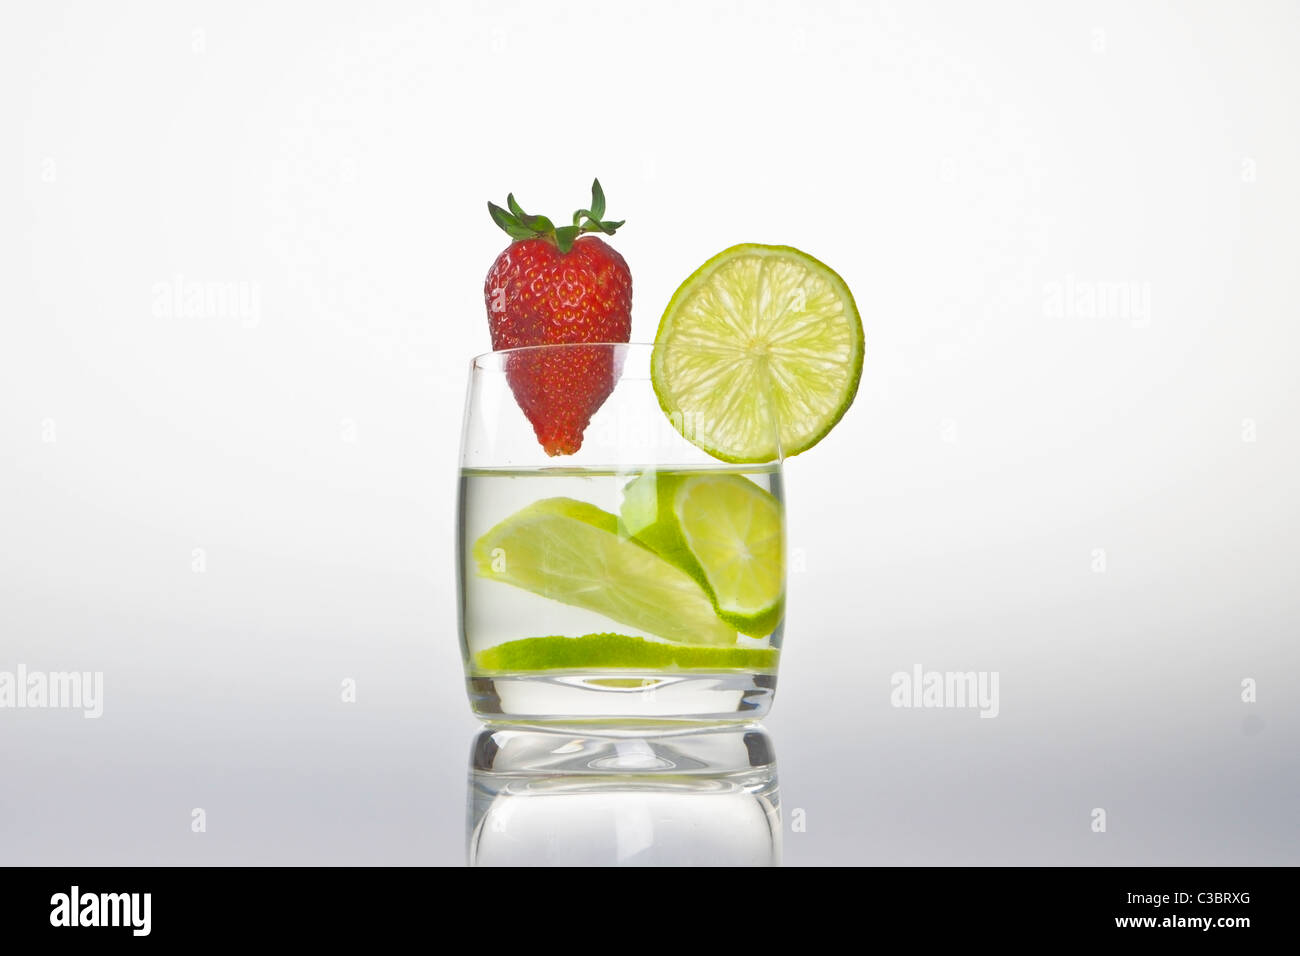 glass with lemon and strawberry - Stock Image